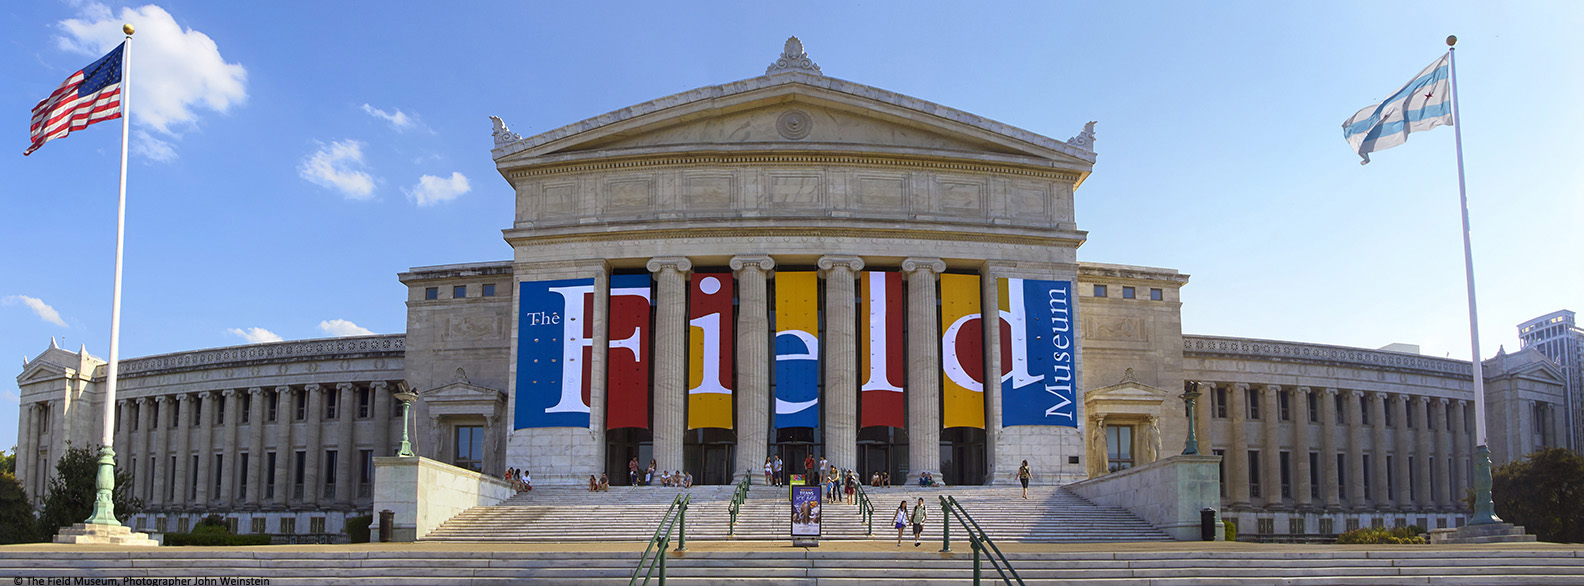 image of the front of the Field Museum building with colorful banners that have letters on them between the tall pillars the spell FIELD